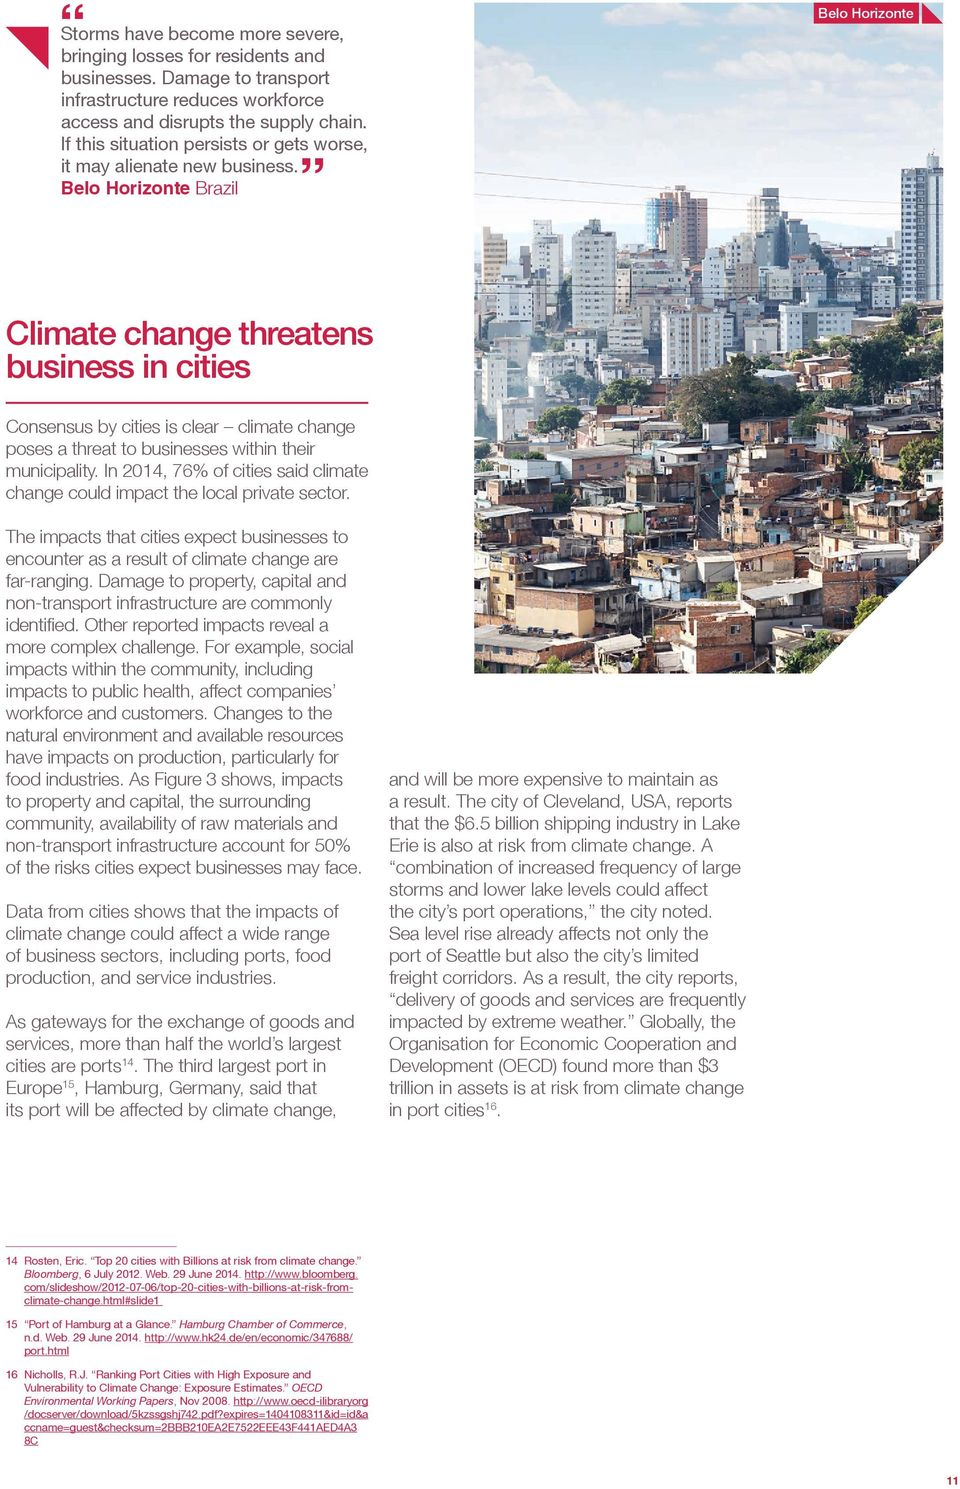 Belo Horizonte Brazil Belo Horizonte Climate change threatens business in cities Consensus by cities is clear climate change poses a threat to businesses within their municipality.